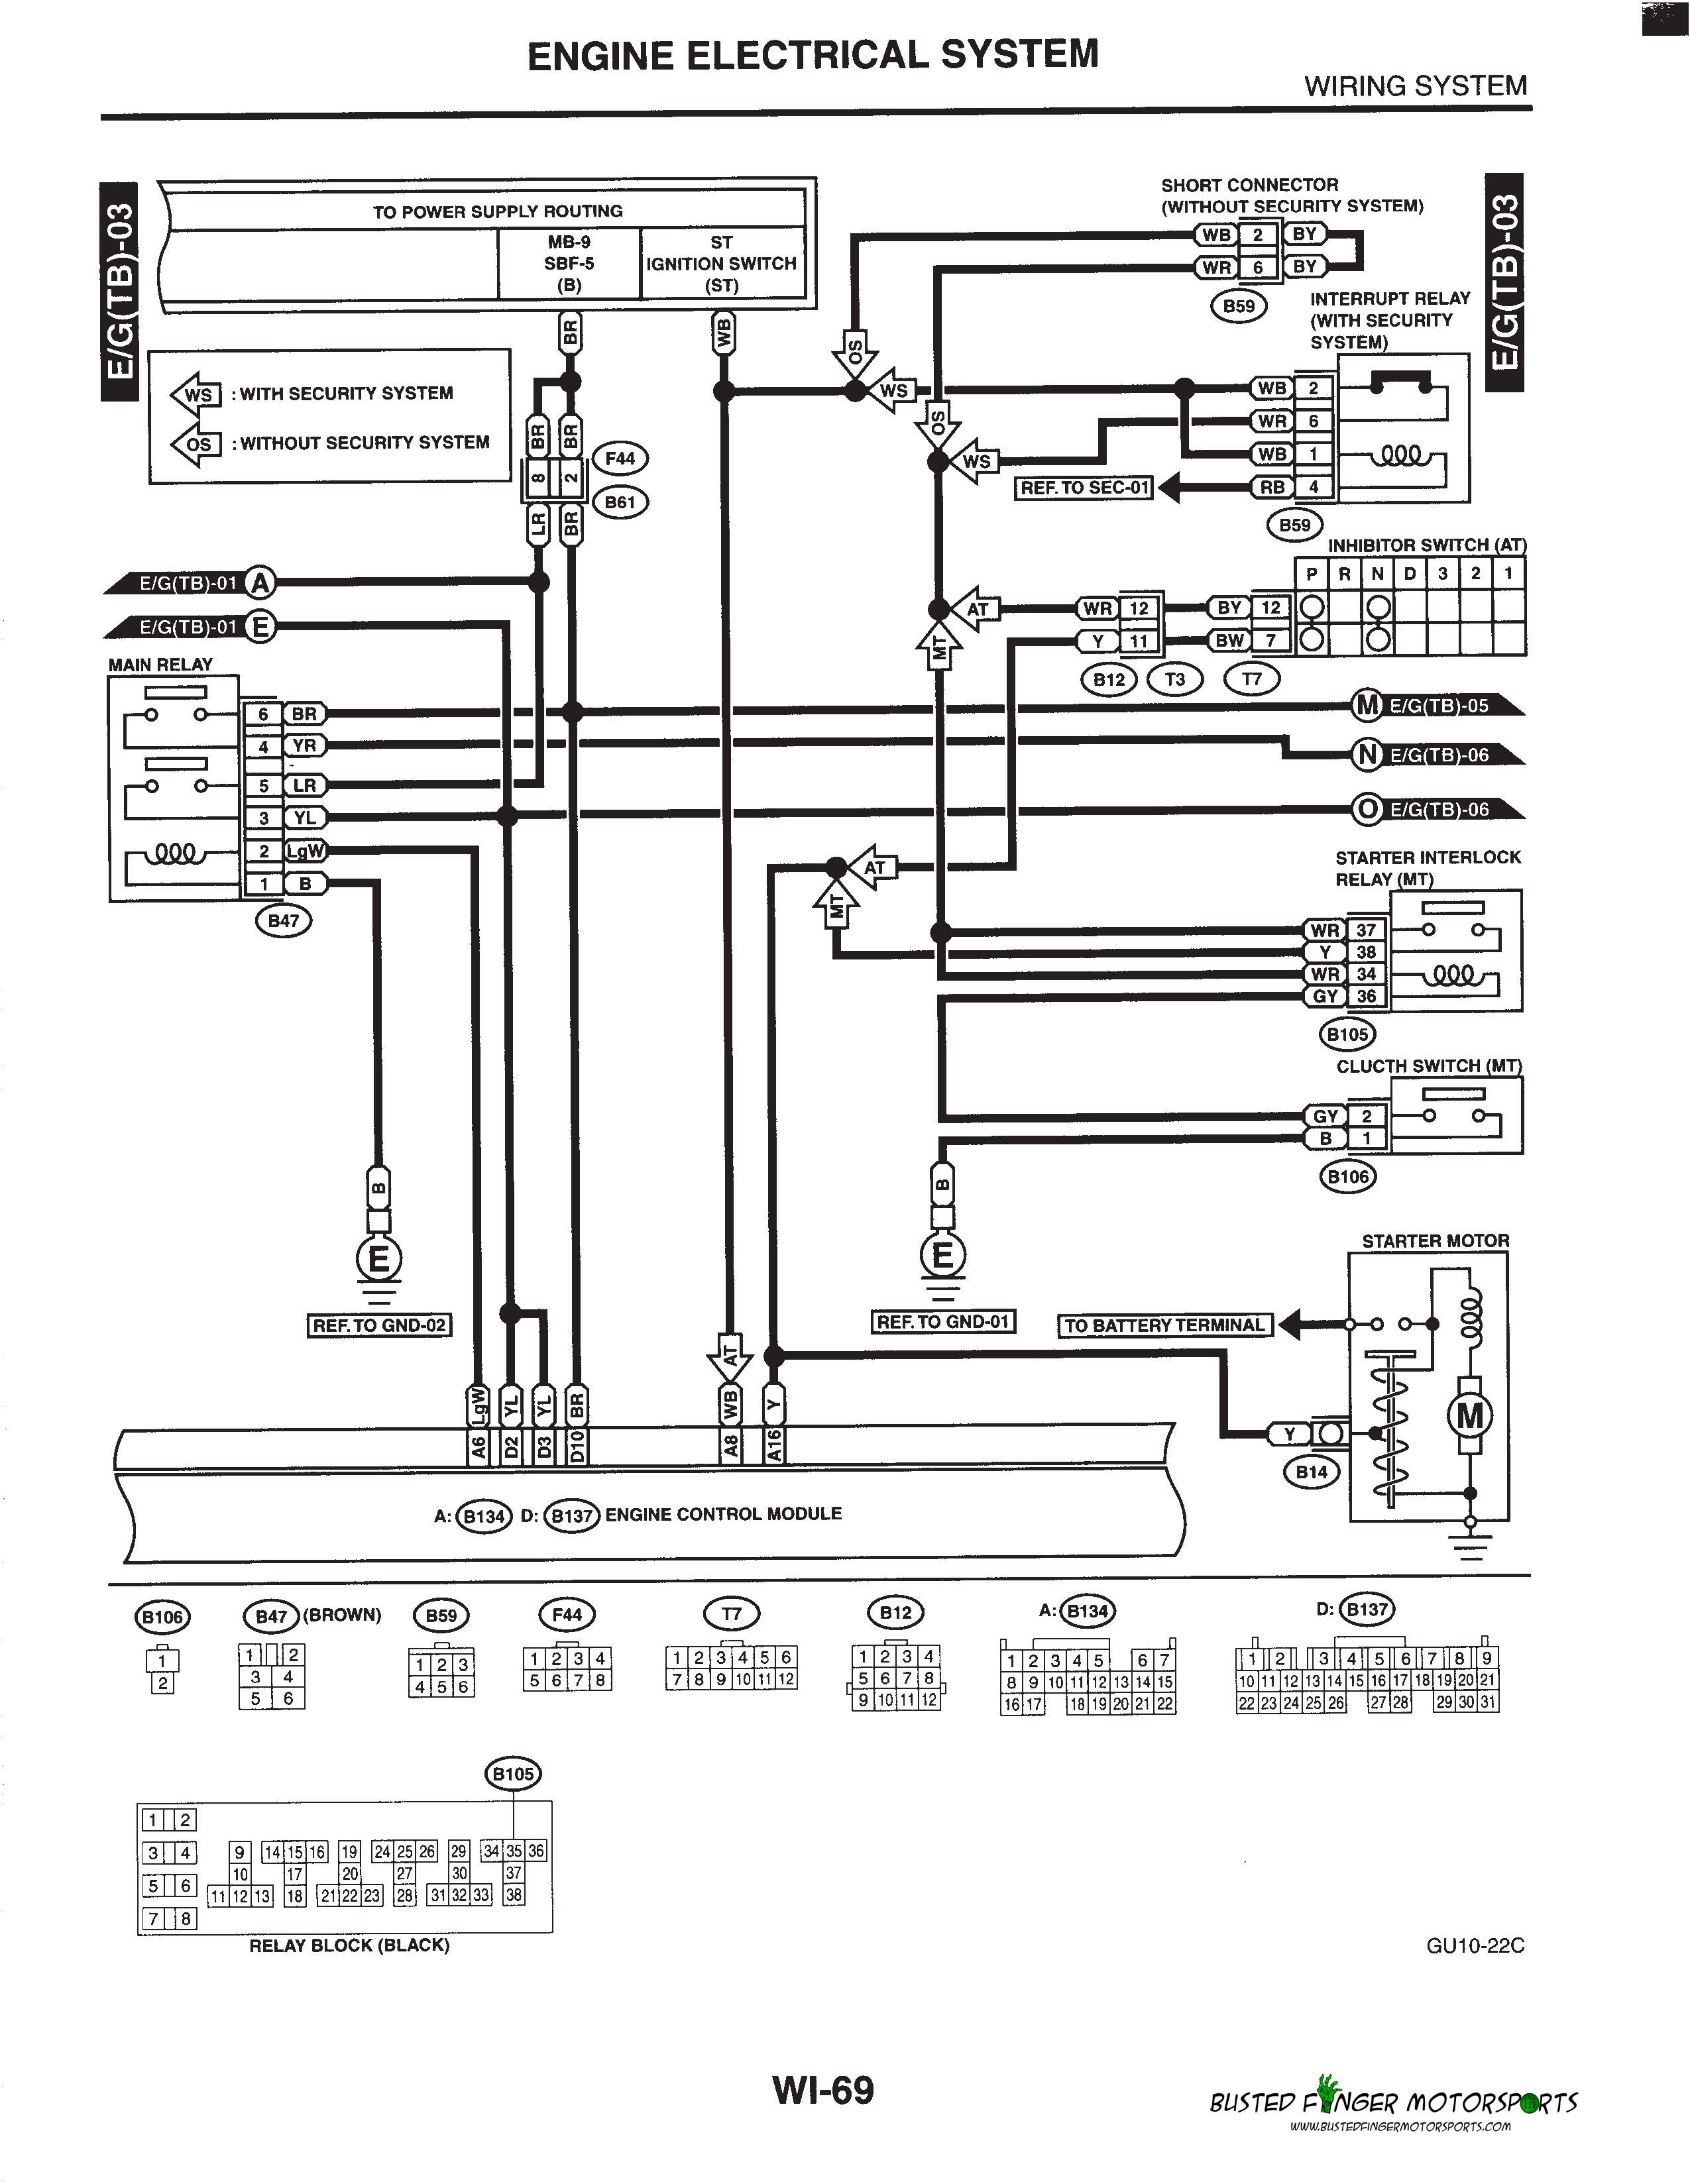 02 Wrx Ignition Wiring Diagram : 30 Wiring Diagram Images